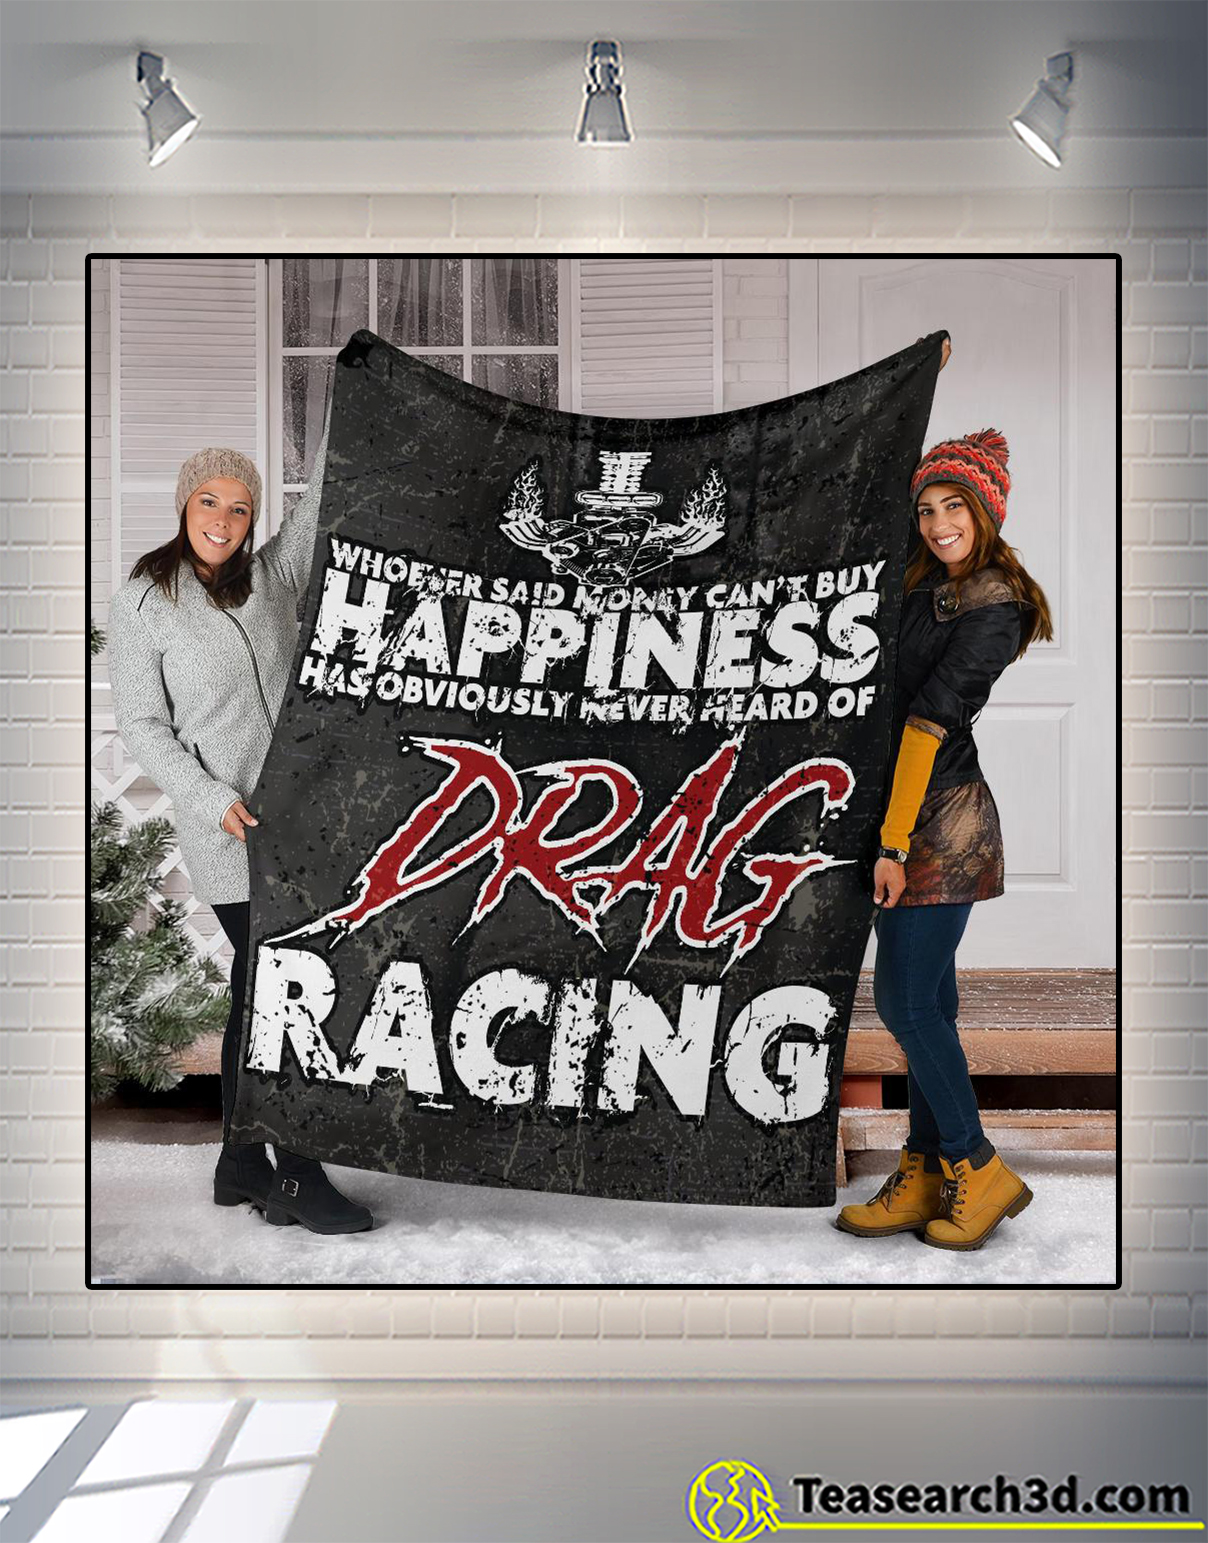 Whoever said money can't buy happiness has obviously never heard of drag racing blanket 2